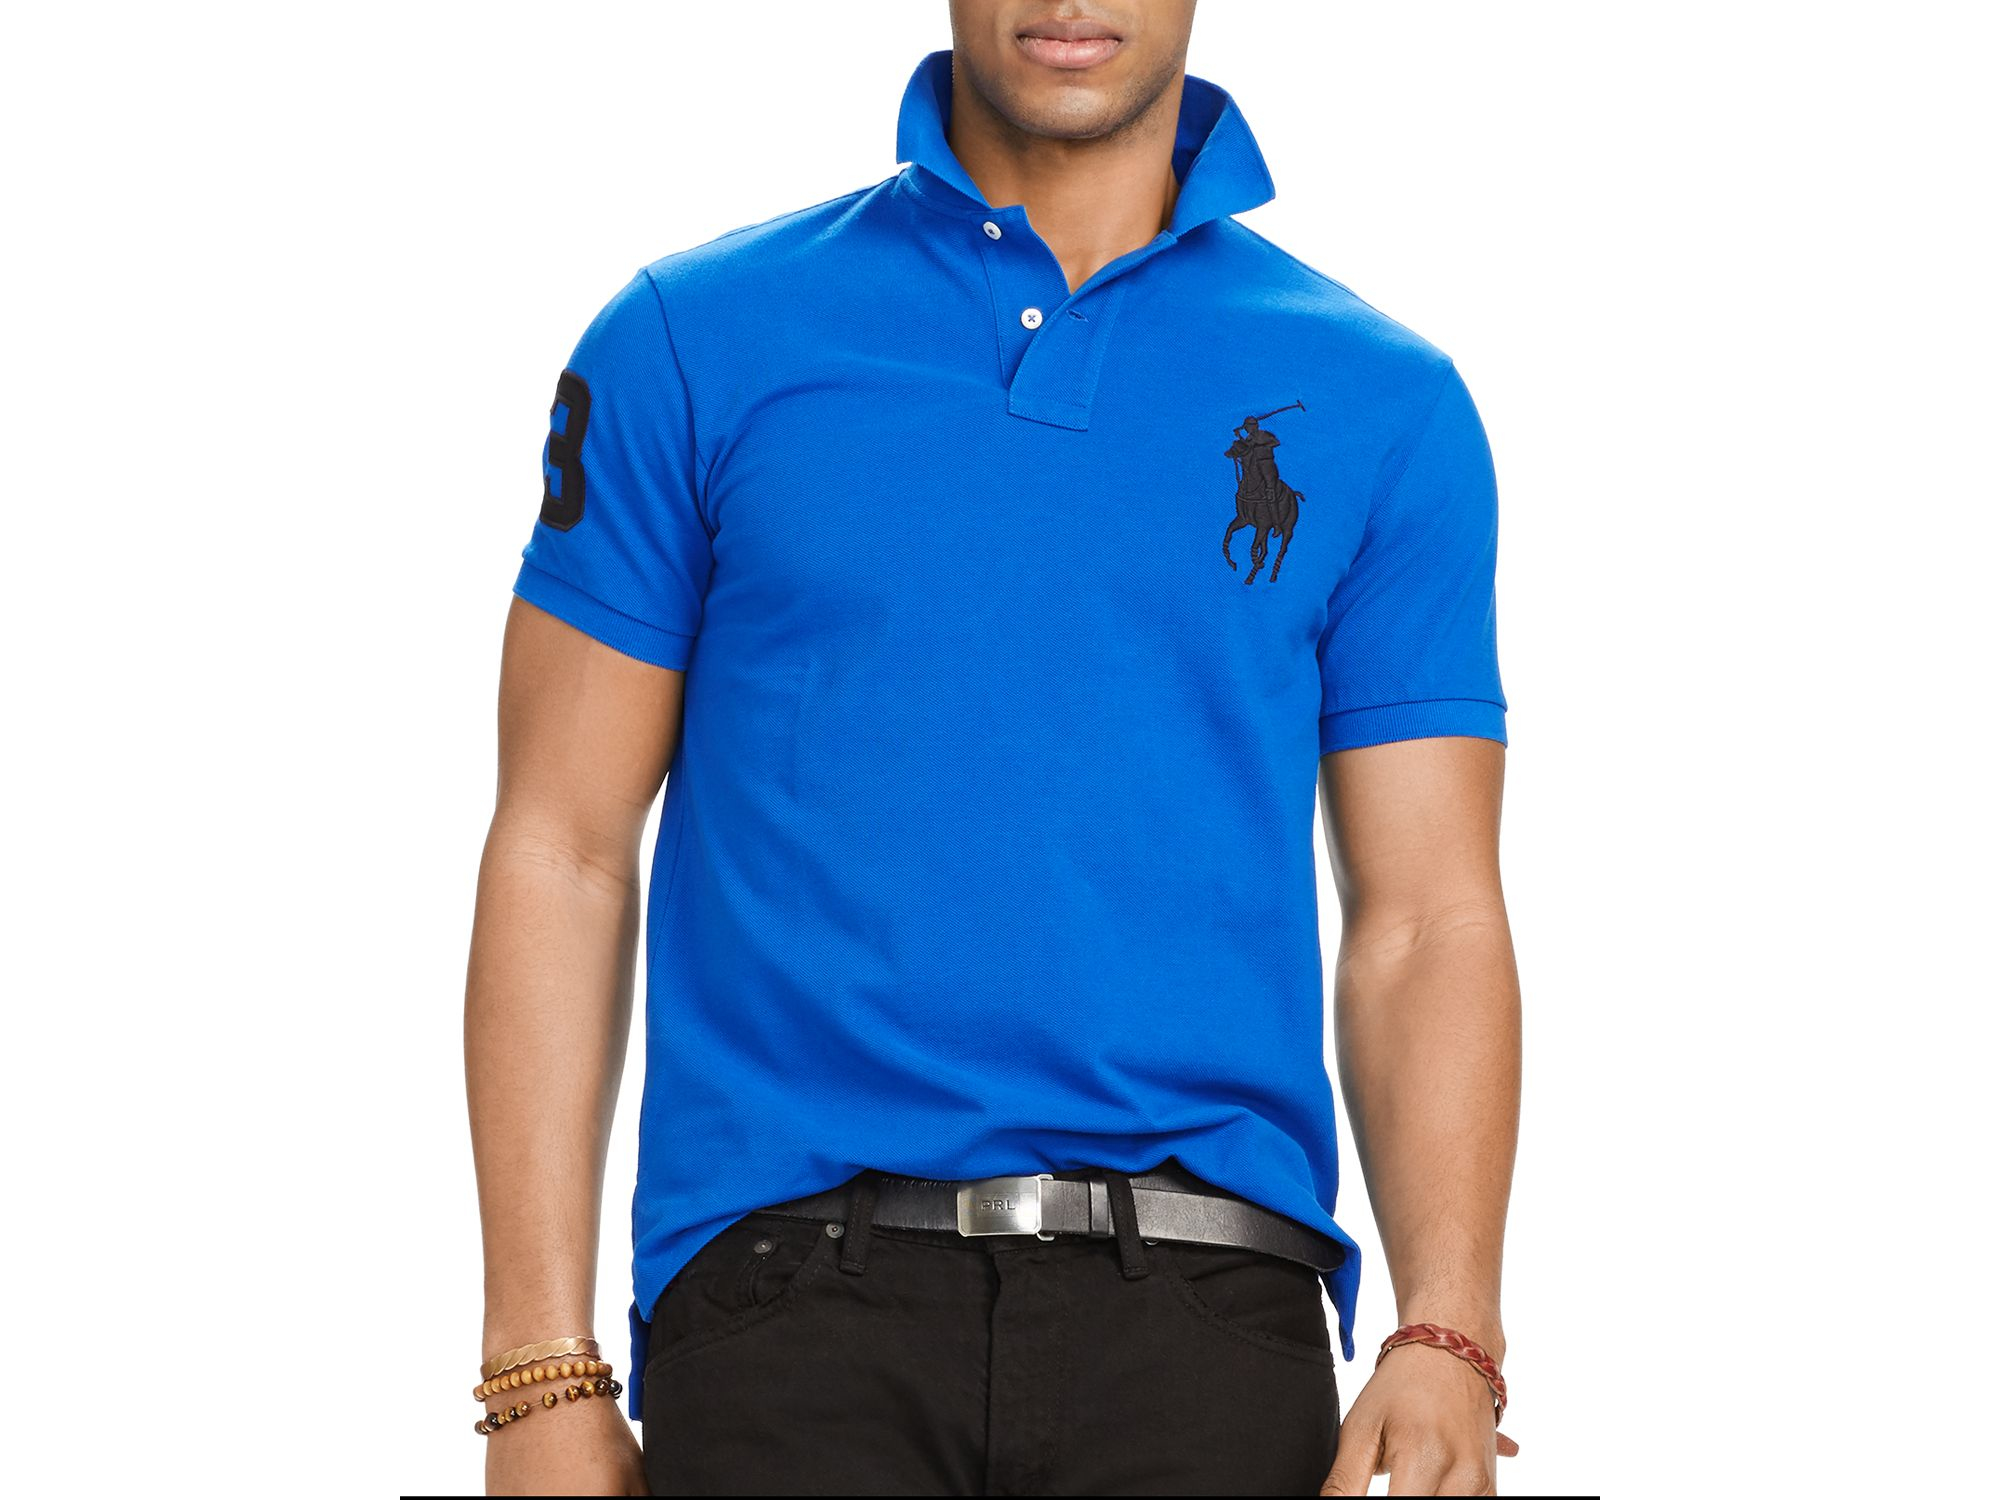 fce7a1198 Ralph Lauren Polo Custom-fit Big Pony Mesh Slim Fit Polo Shirt in ...